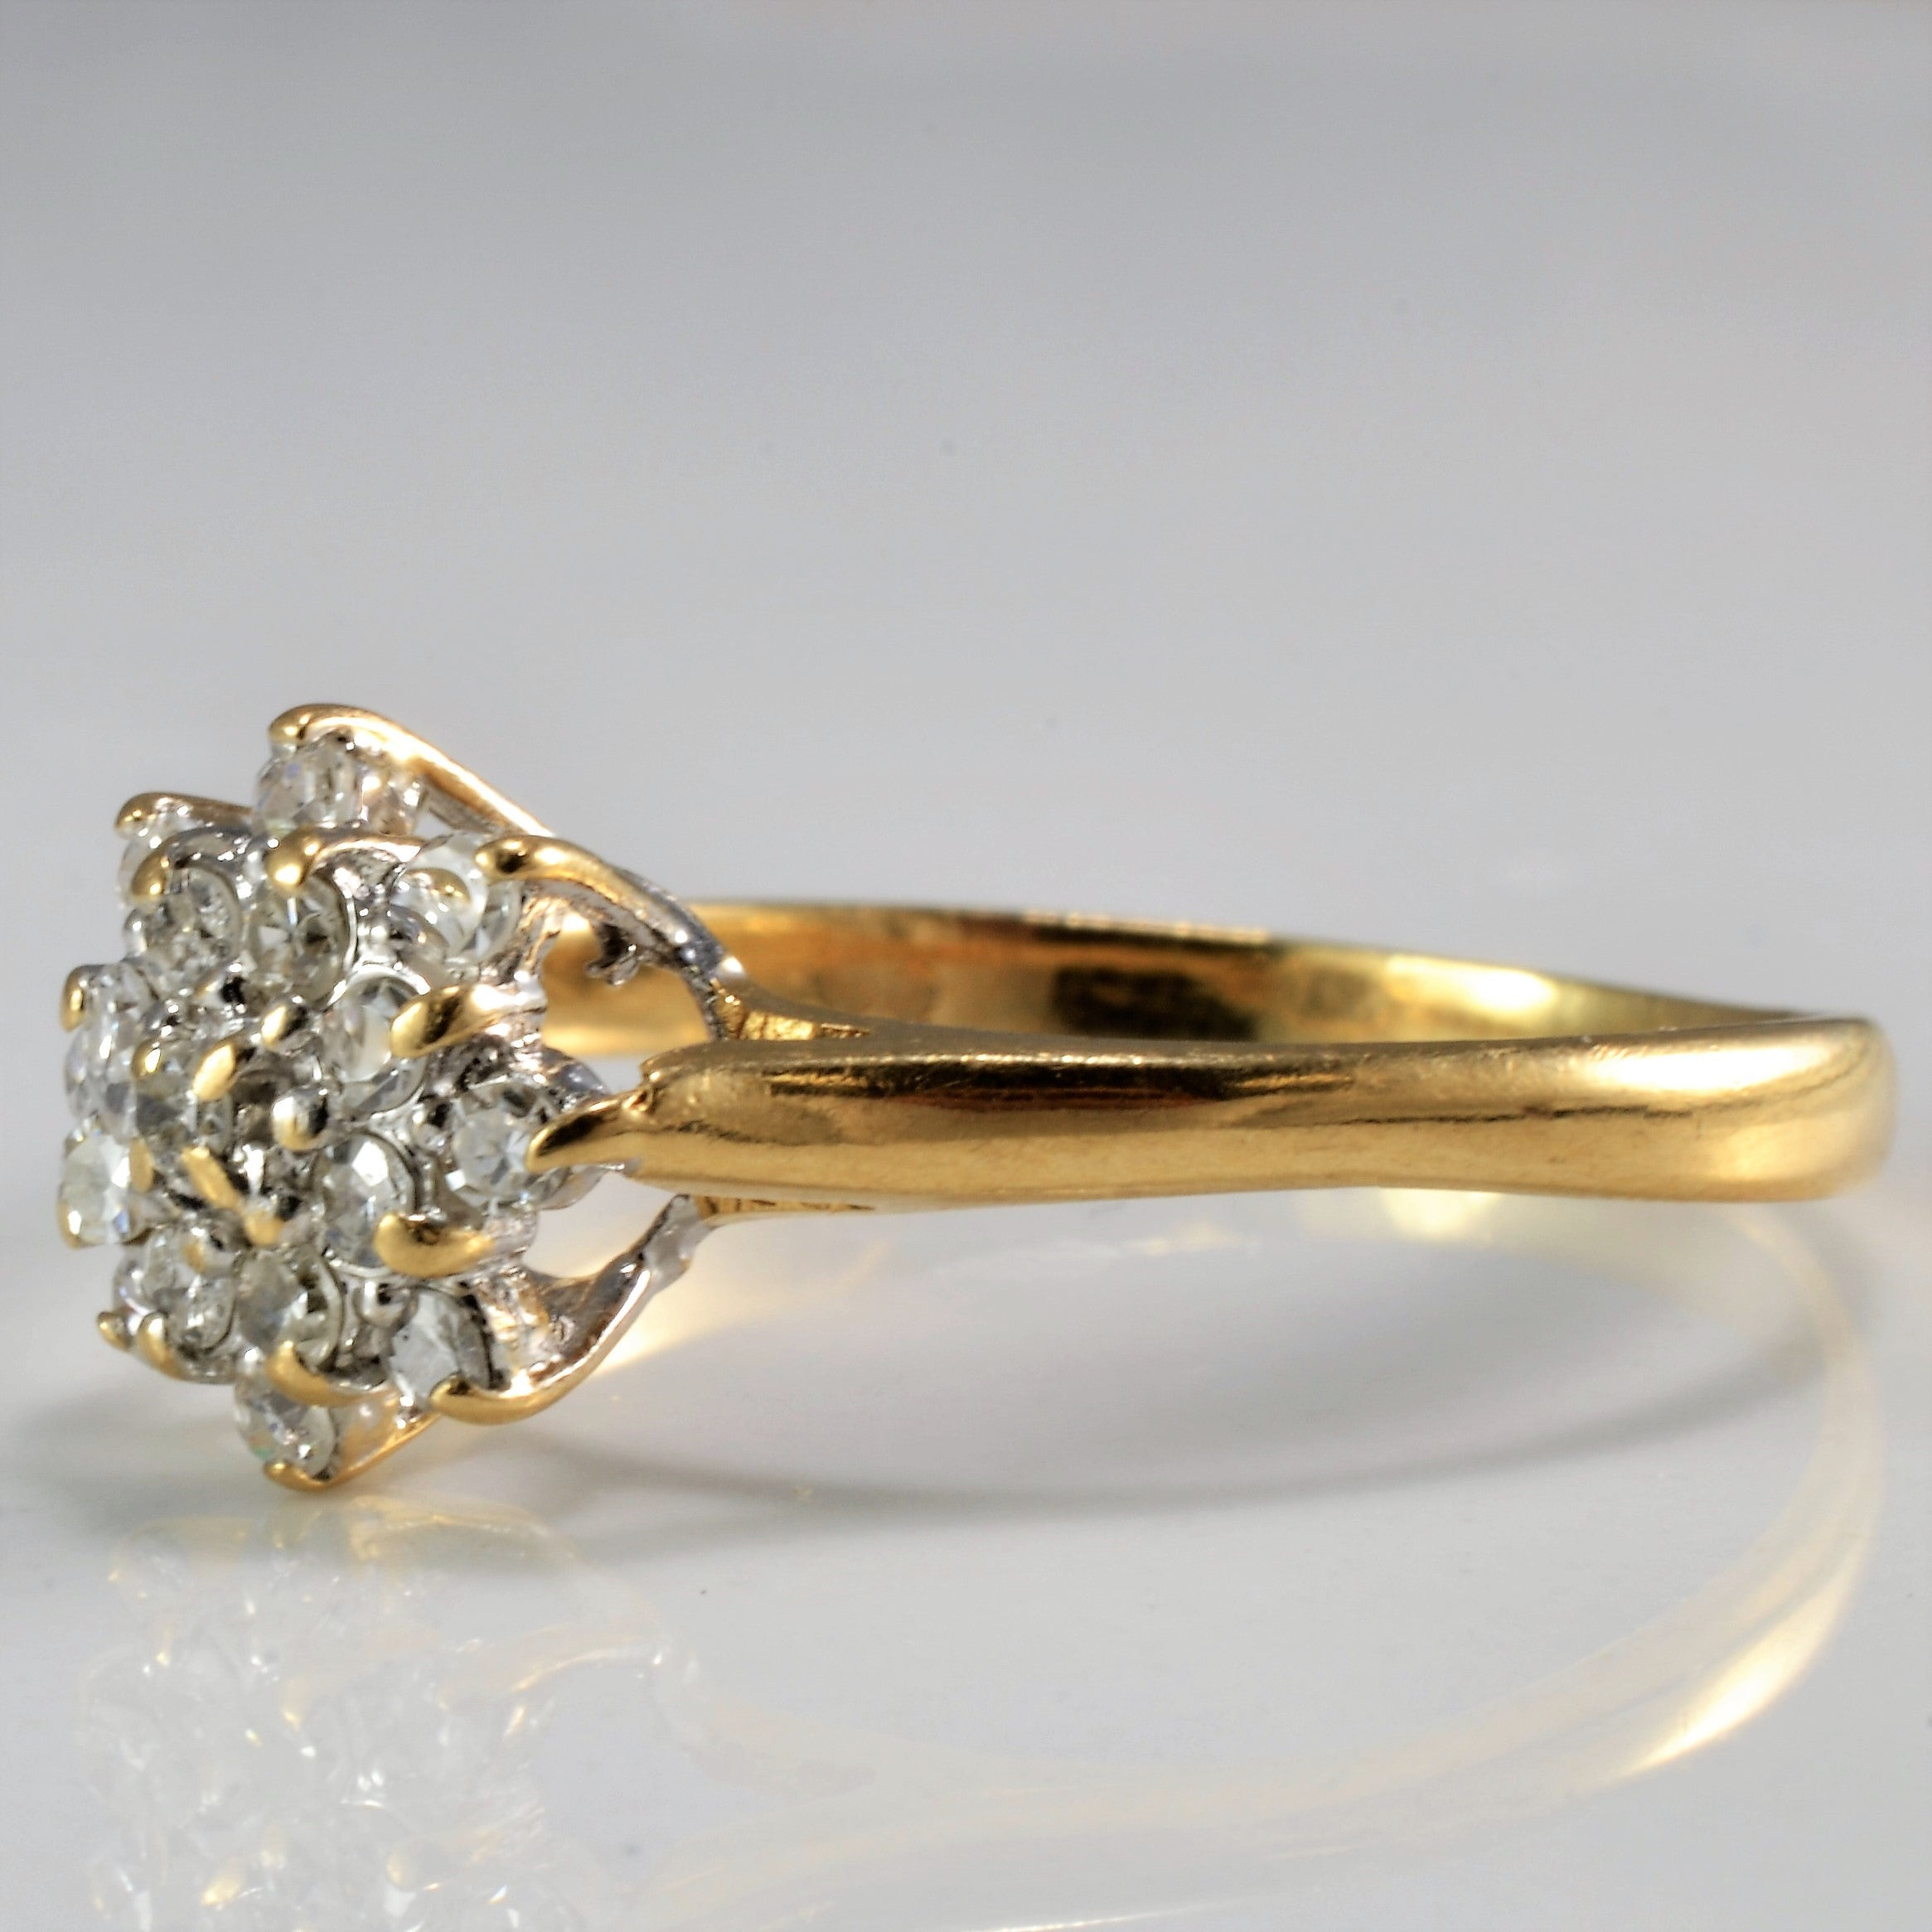 Classic Cluster Diamond Engagement Ring | 0.17 ctw, SZ 7.5 |